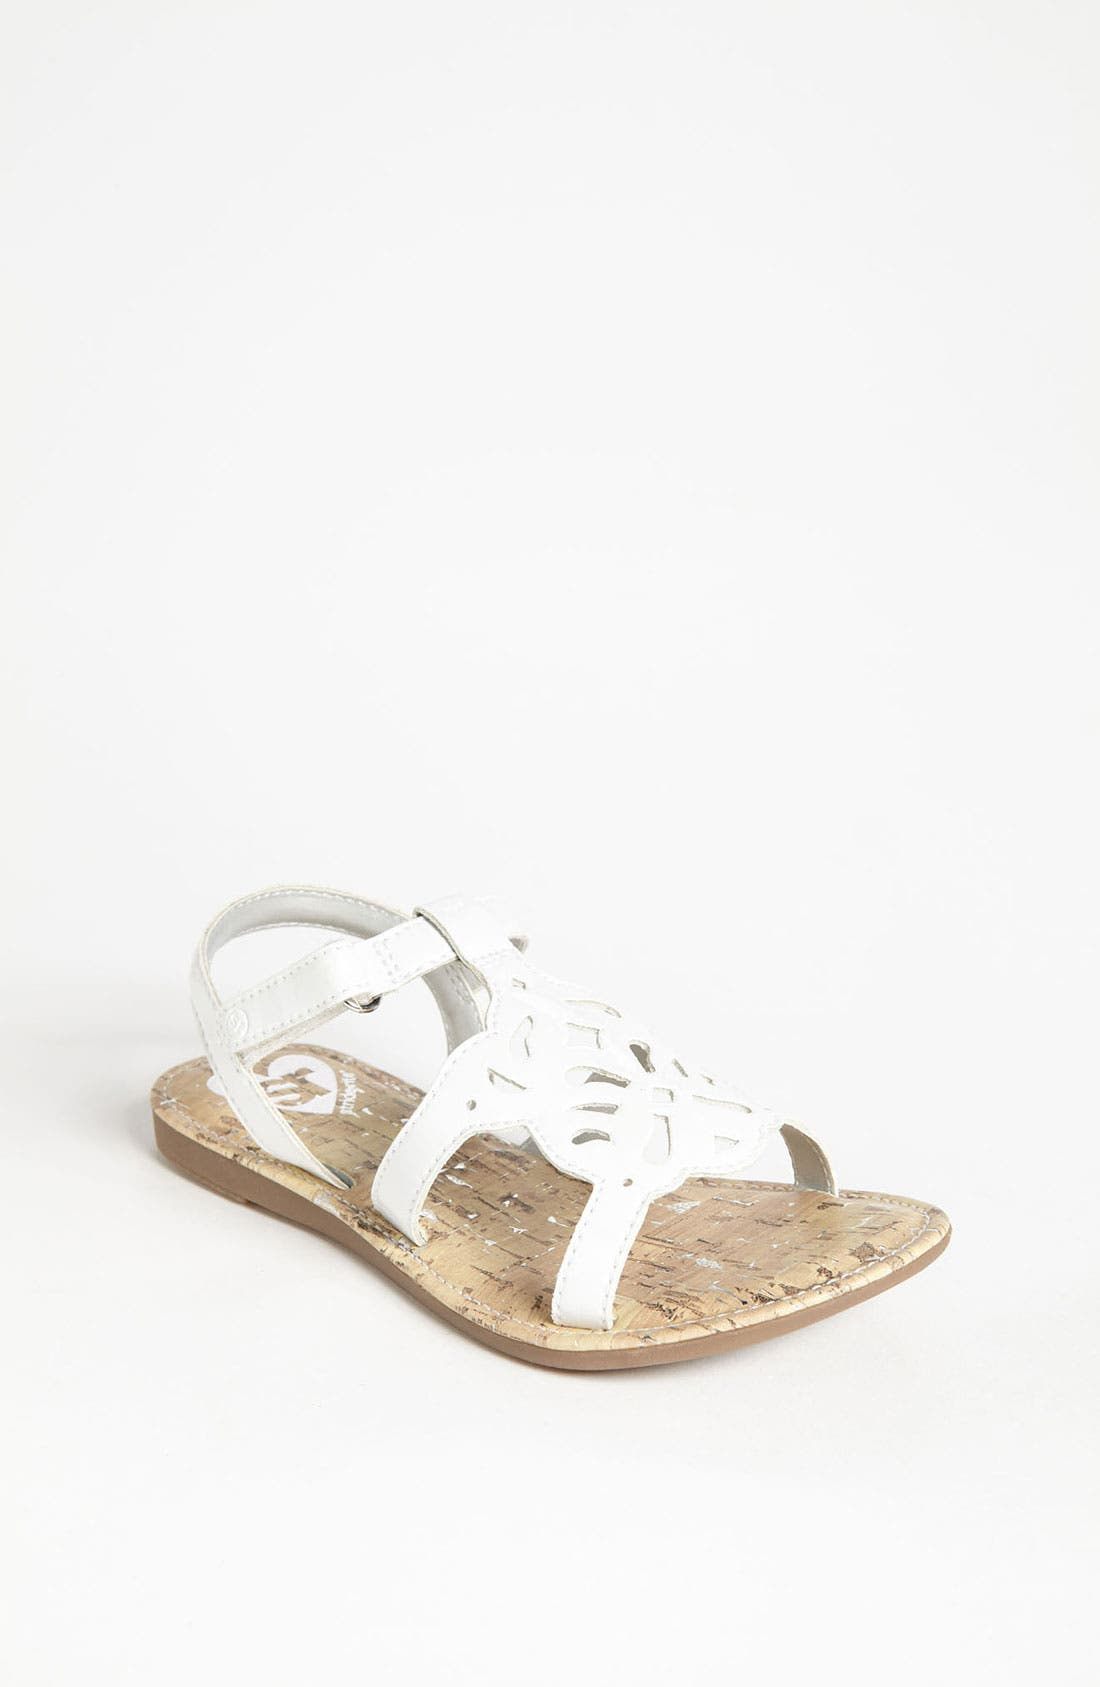 Alternate Image 1 Selected - Stride Rite 'Tessa' Sandal (Toddler & Little Kid)